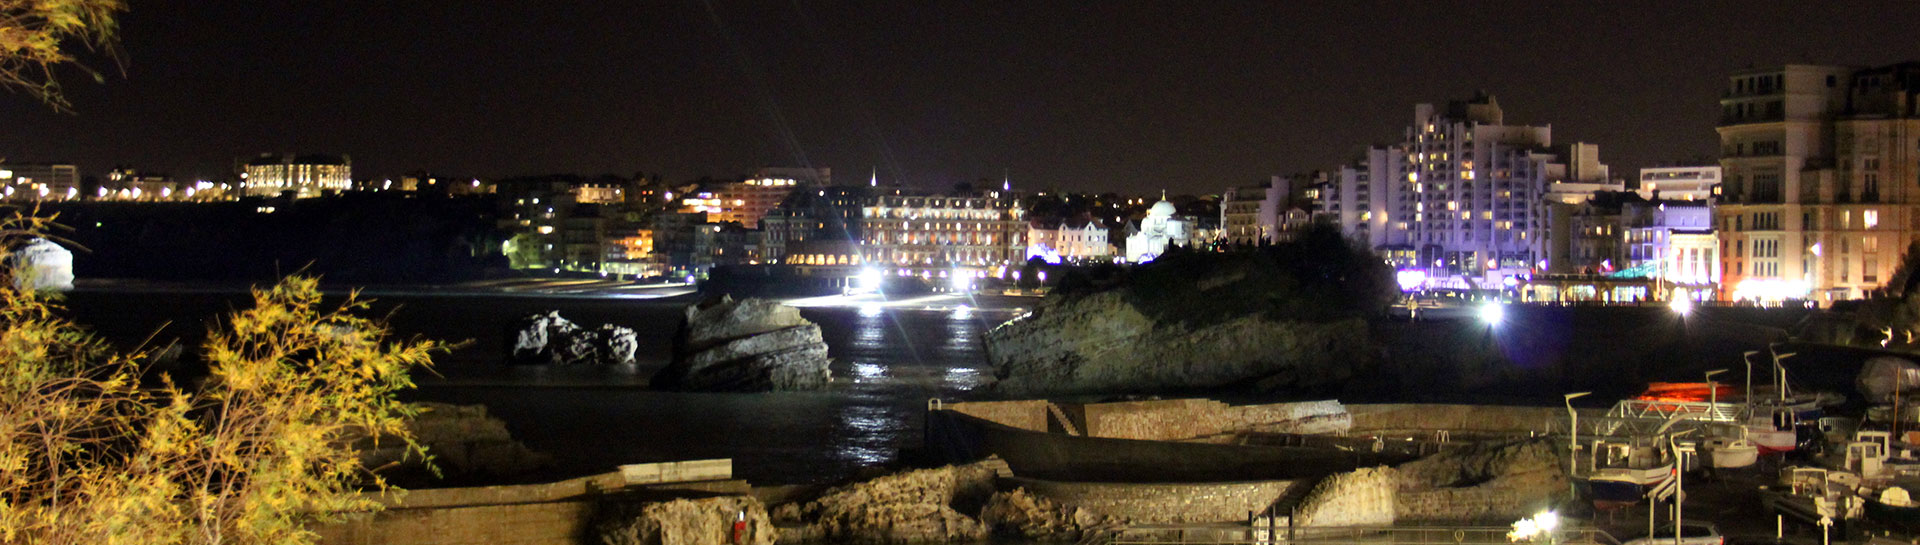 biarritz-nuit-fun-night-surfing